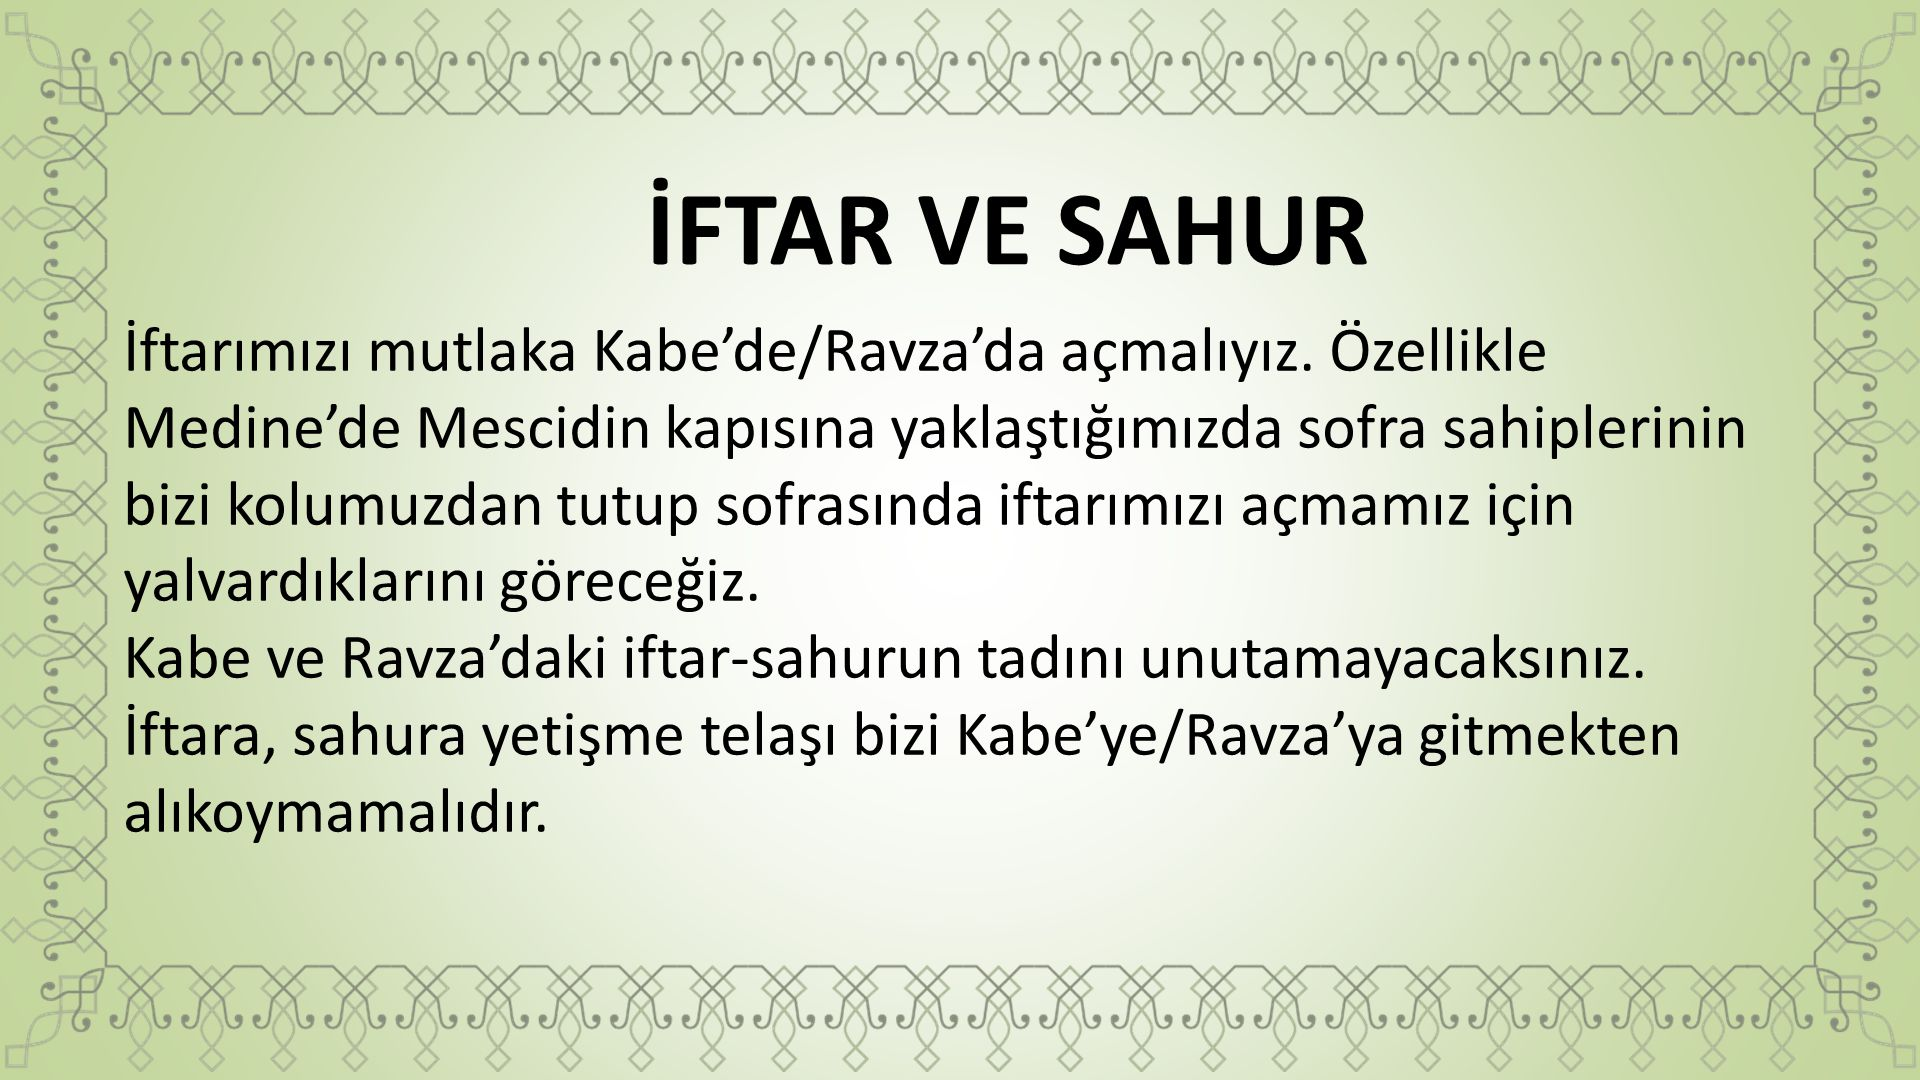 İFTAR VE SAHUR